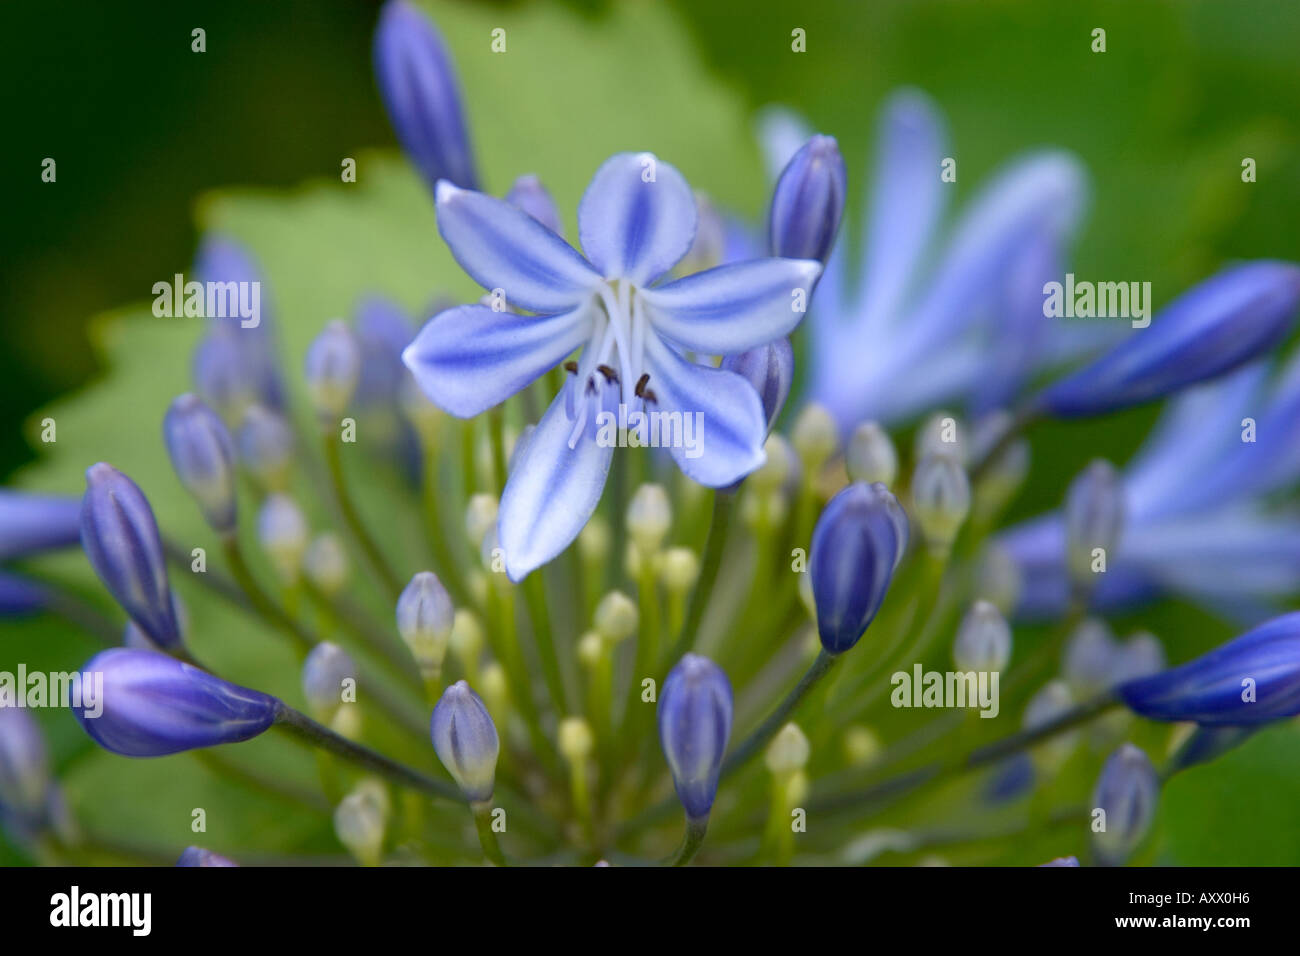 Agapanthus lily of the nile flowers close up stock photo 9673237 agapanthus lily of the nile flowers close up izmirmasajfo Images